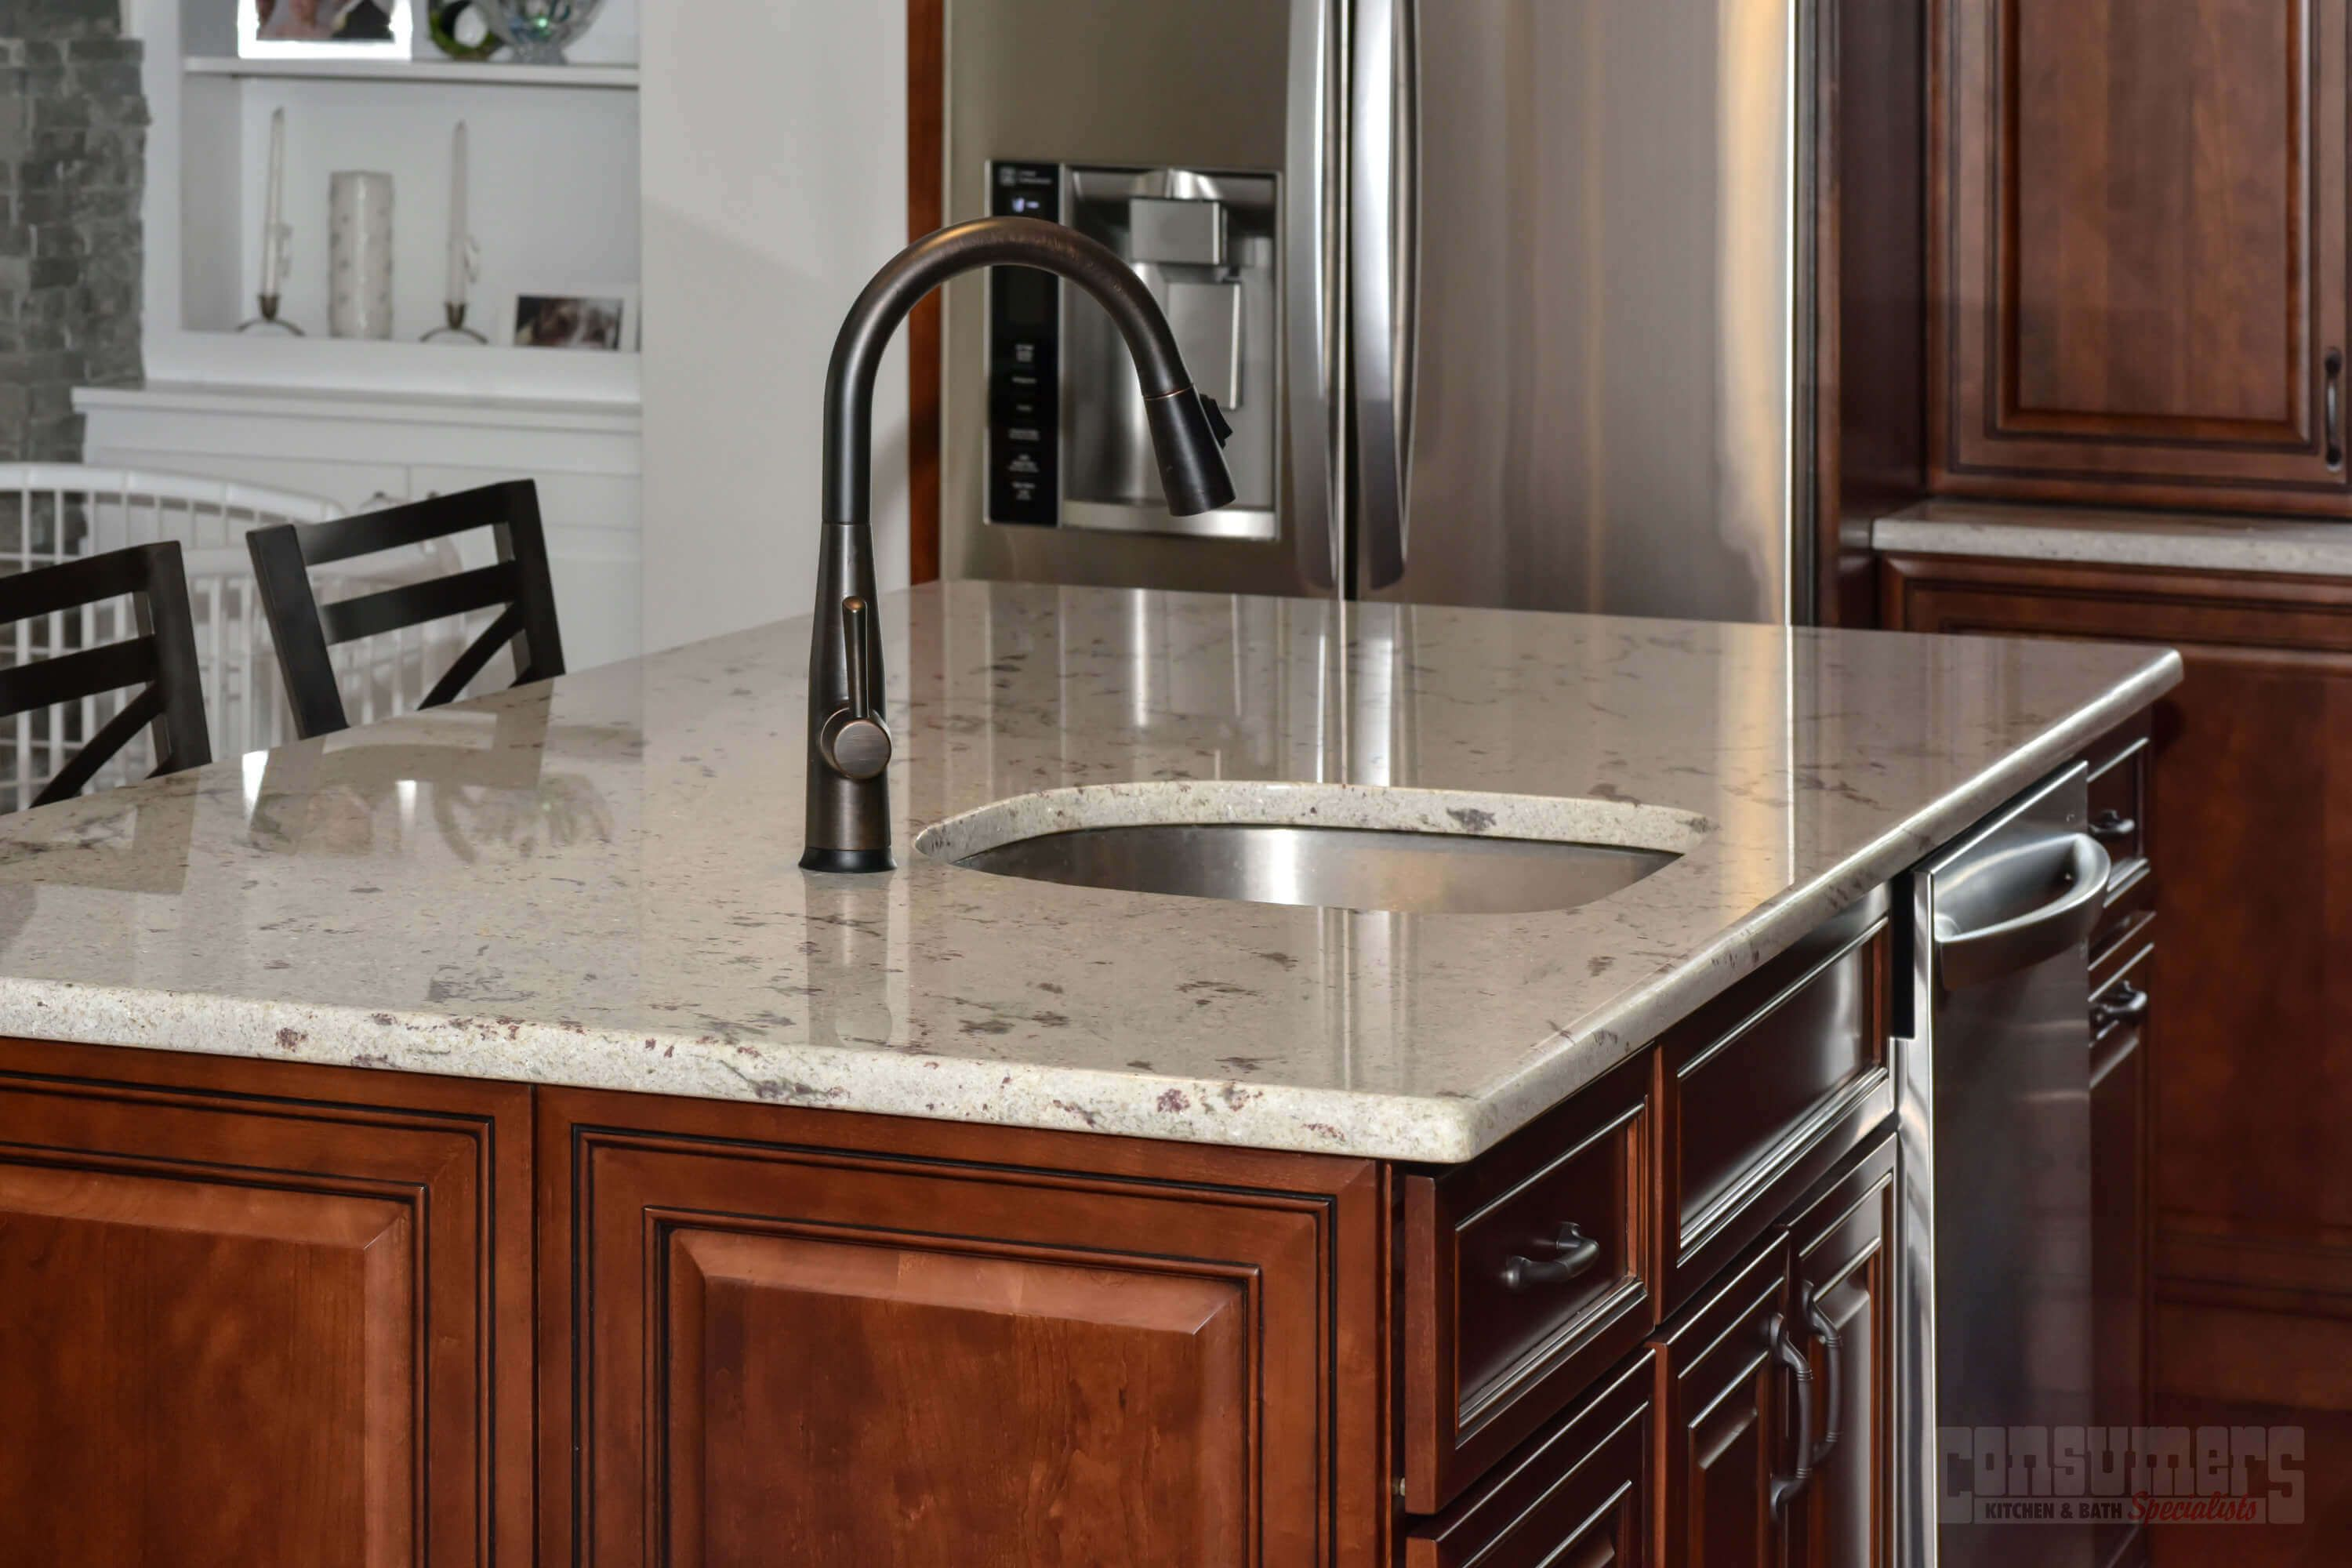 Pin By Consumers Kitchens Baths On Hauppauge Ensemble Cherry Kitchen Custom Cabinets River White Granite